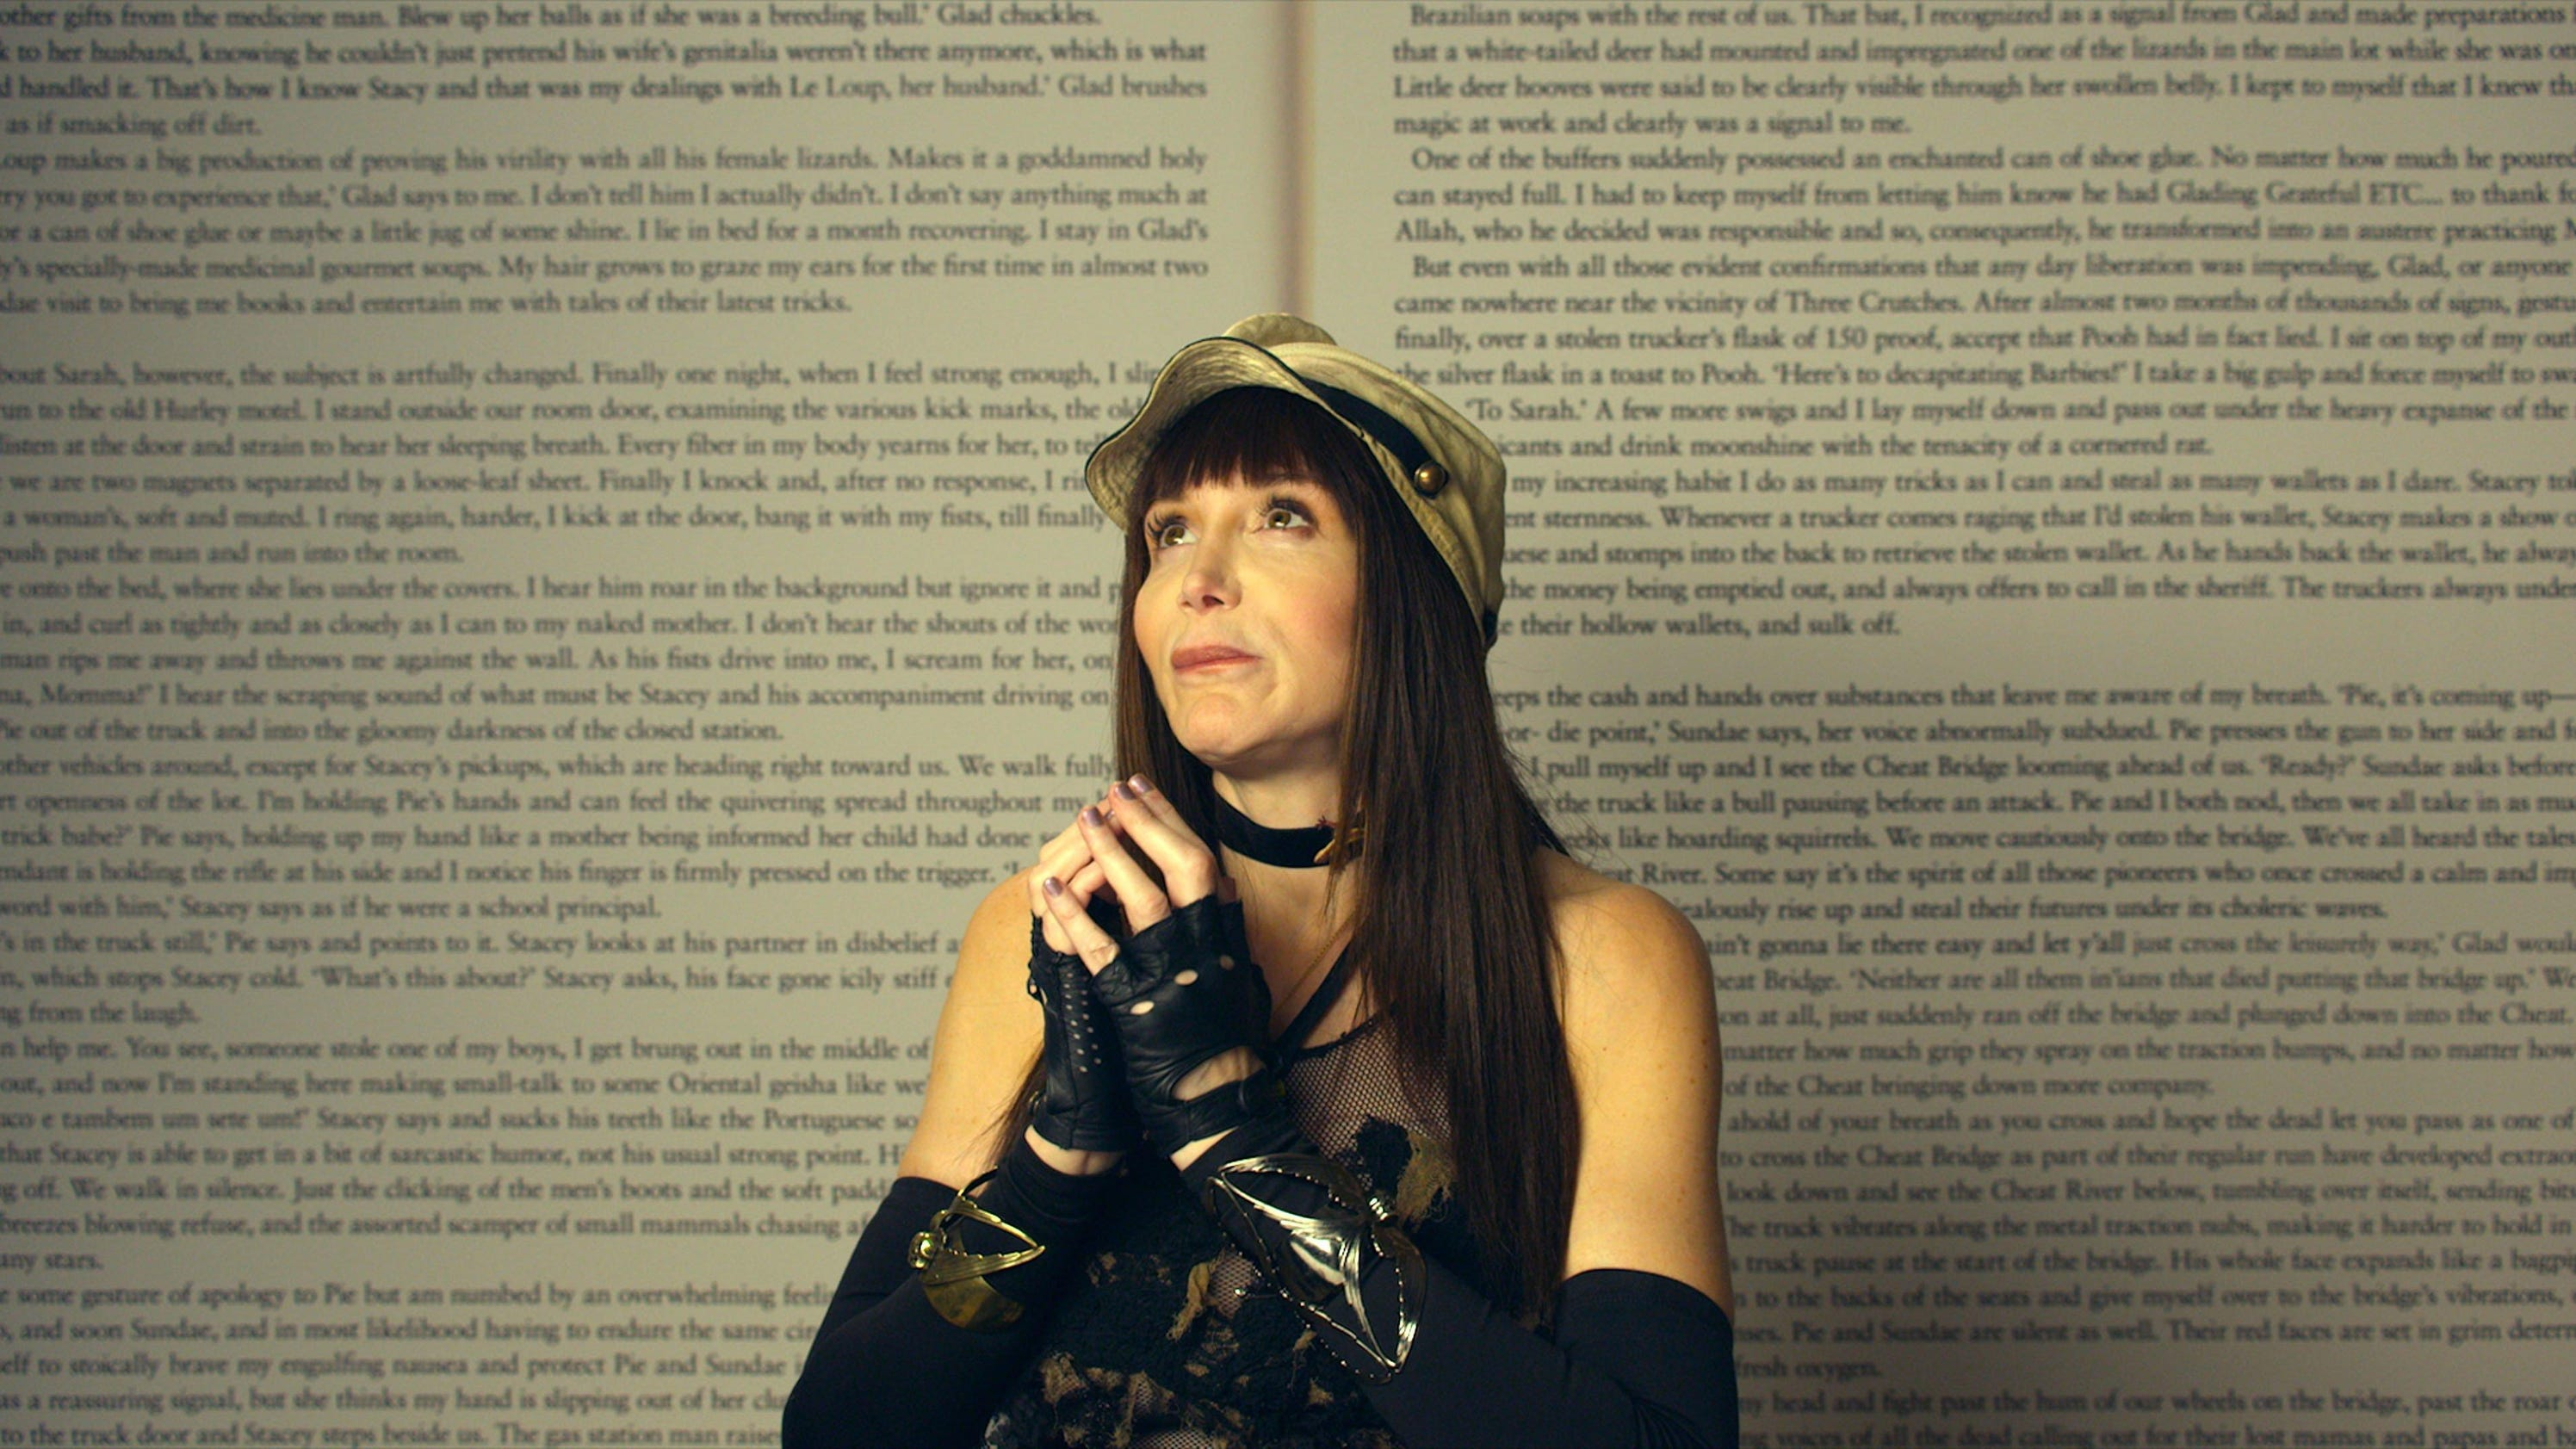 Review: 'JT LeRoy' doc chronicles a bizarre literary hoax